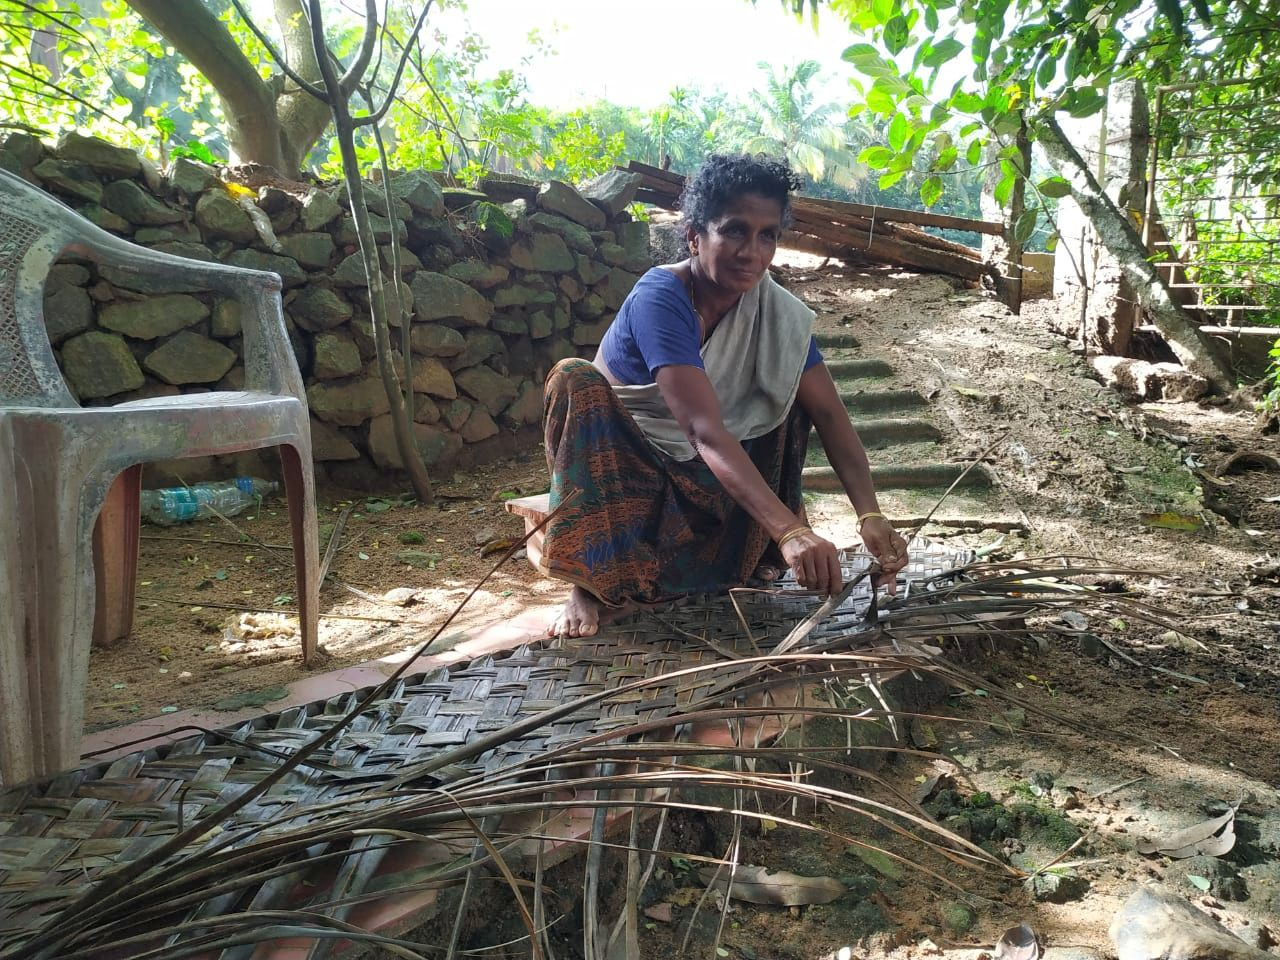 Weaving leaves for an income (Image: Gby Atee)